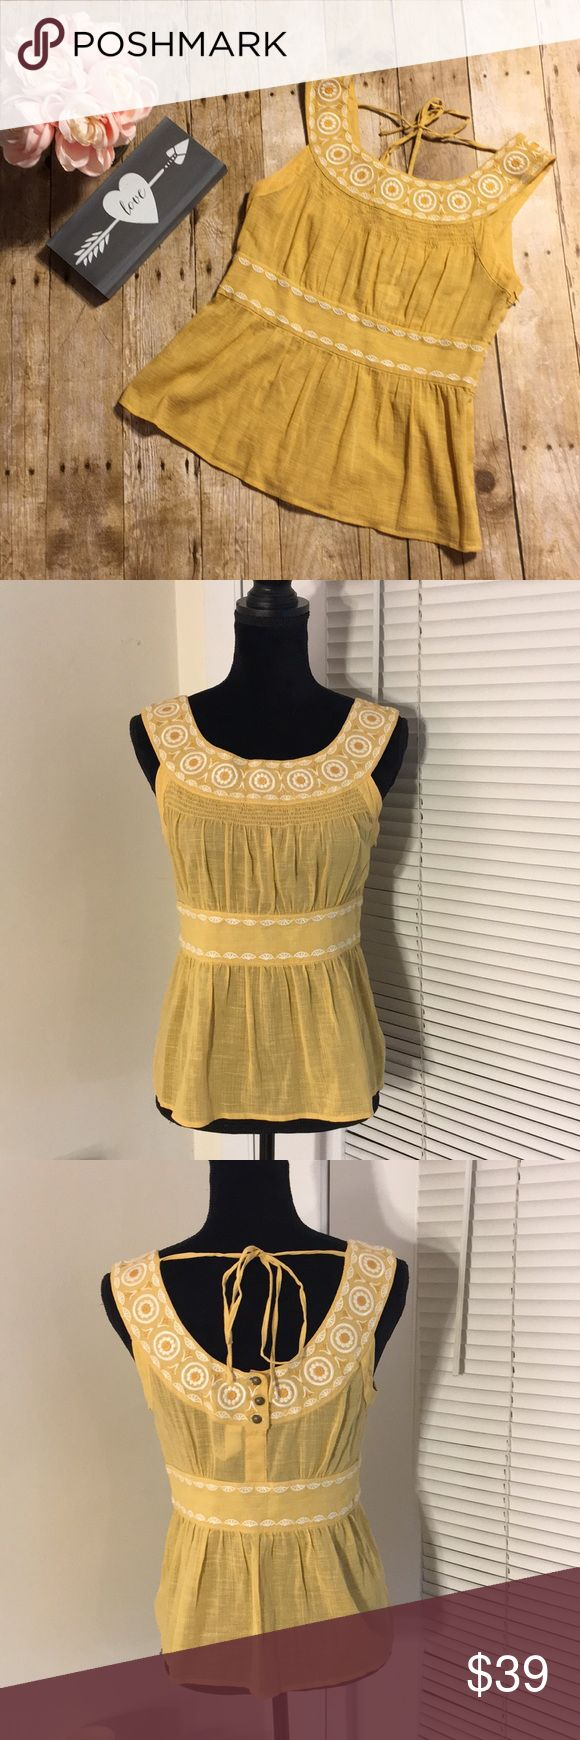 """Floreat Embroidered Tank (Anthropologie) Yellow cotton/linen blend tank from Floreat. Fabric has a slight crinkle texture to it. Embroidered pattern at the neckline and waist. Back of the top features and tie and three buttons at mid back. Fully functional concealed side zipper.   Approximate flat lay measurements  Bust: 15.5"""" Length: 22"""" Anthropologie Tops Blouses"""